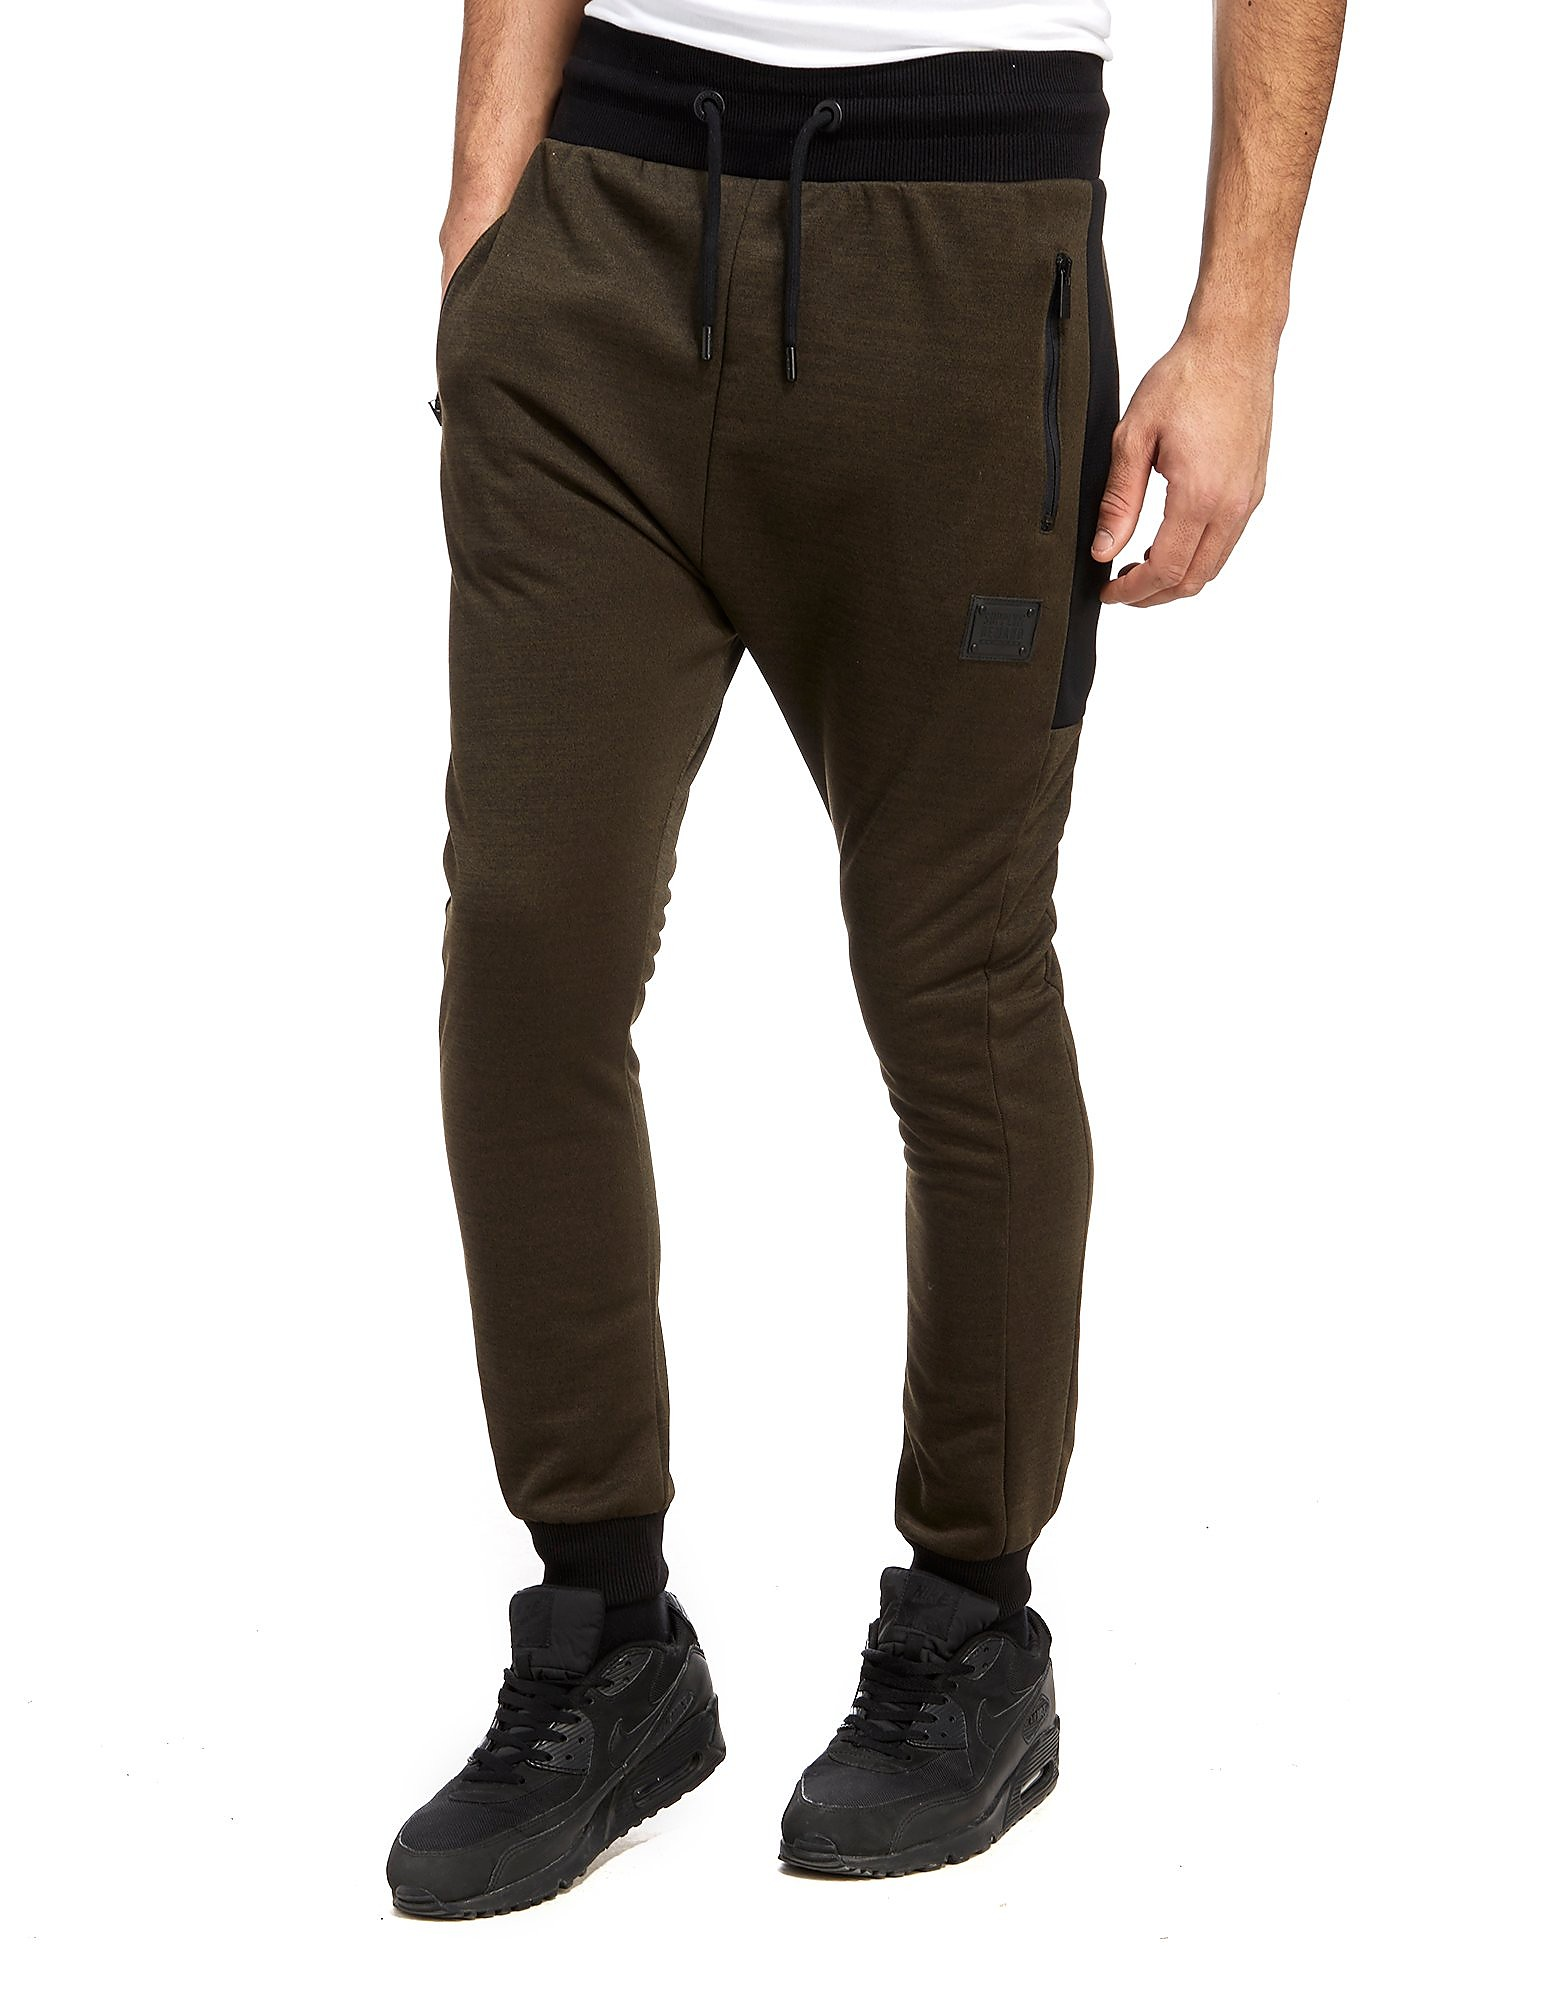 Supply & Demand Venom Joggers